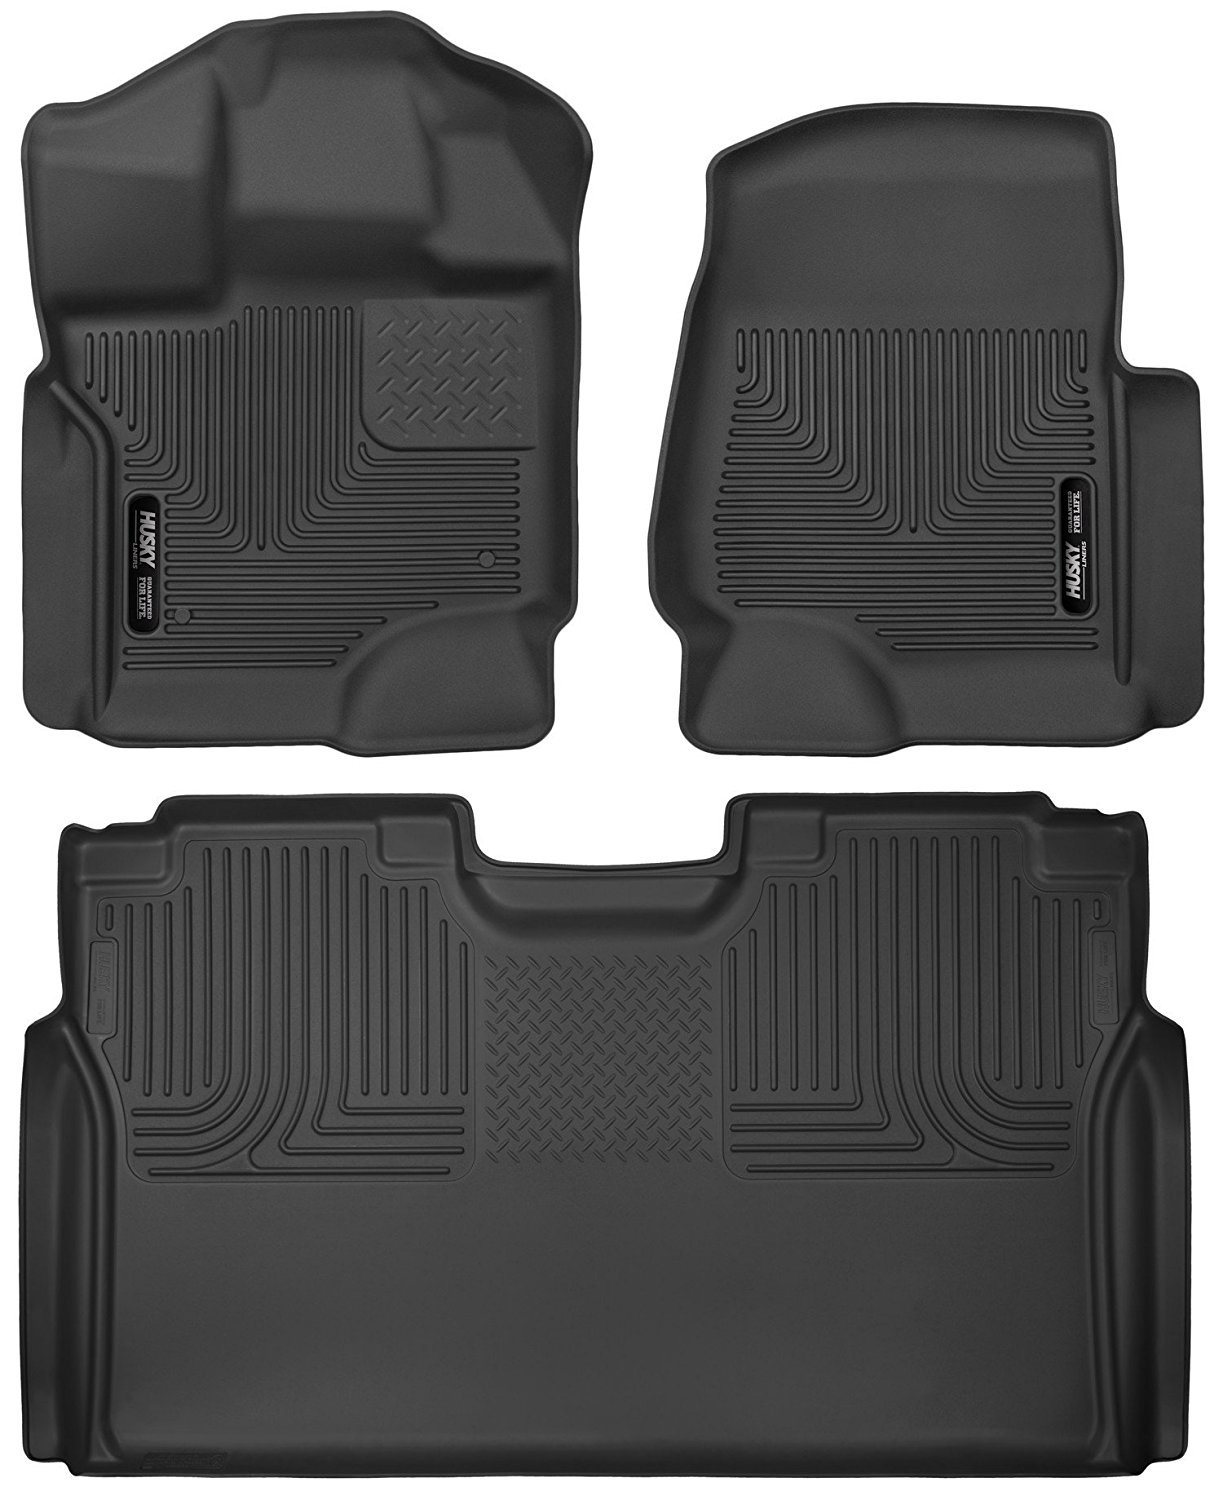 Husky Liners 53341-53491 - X-Act Contour - First and Second Rows (Full Coverage under Second Row Seat) All Weather Custom Fit Floor Liners for 2015-2016 Ford F-150 SuperCrew Cab